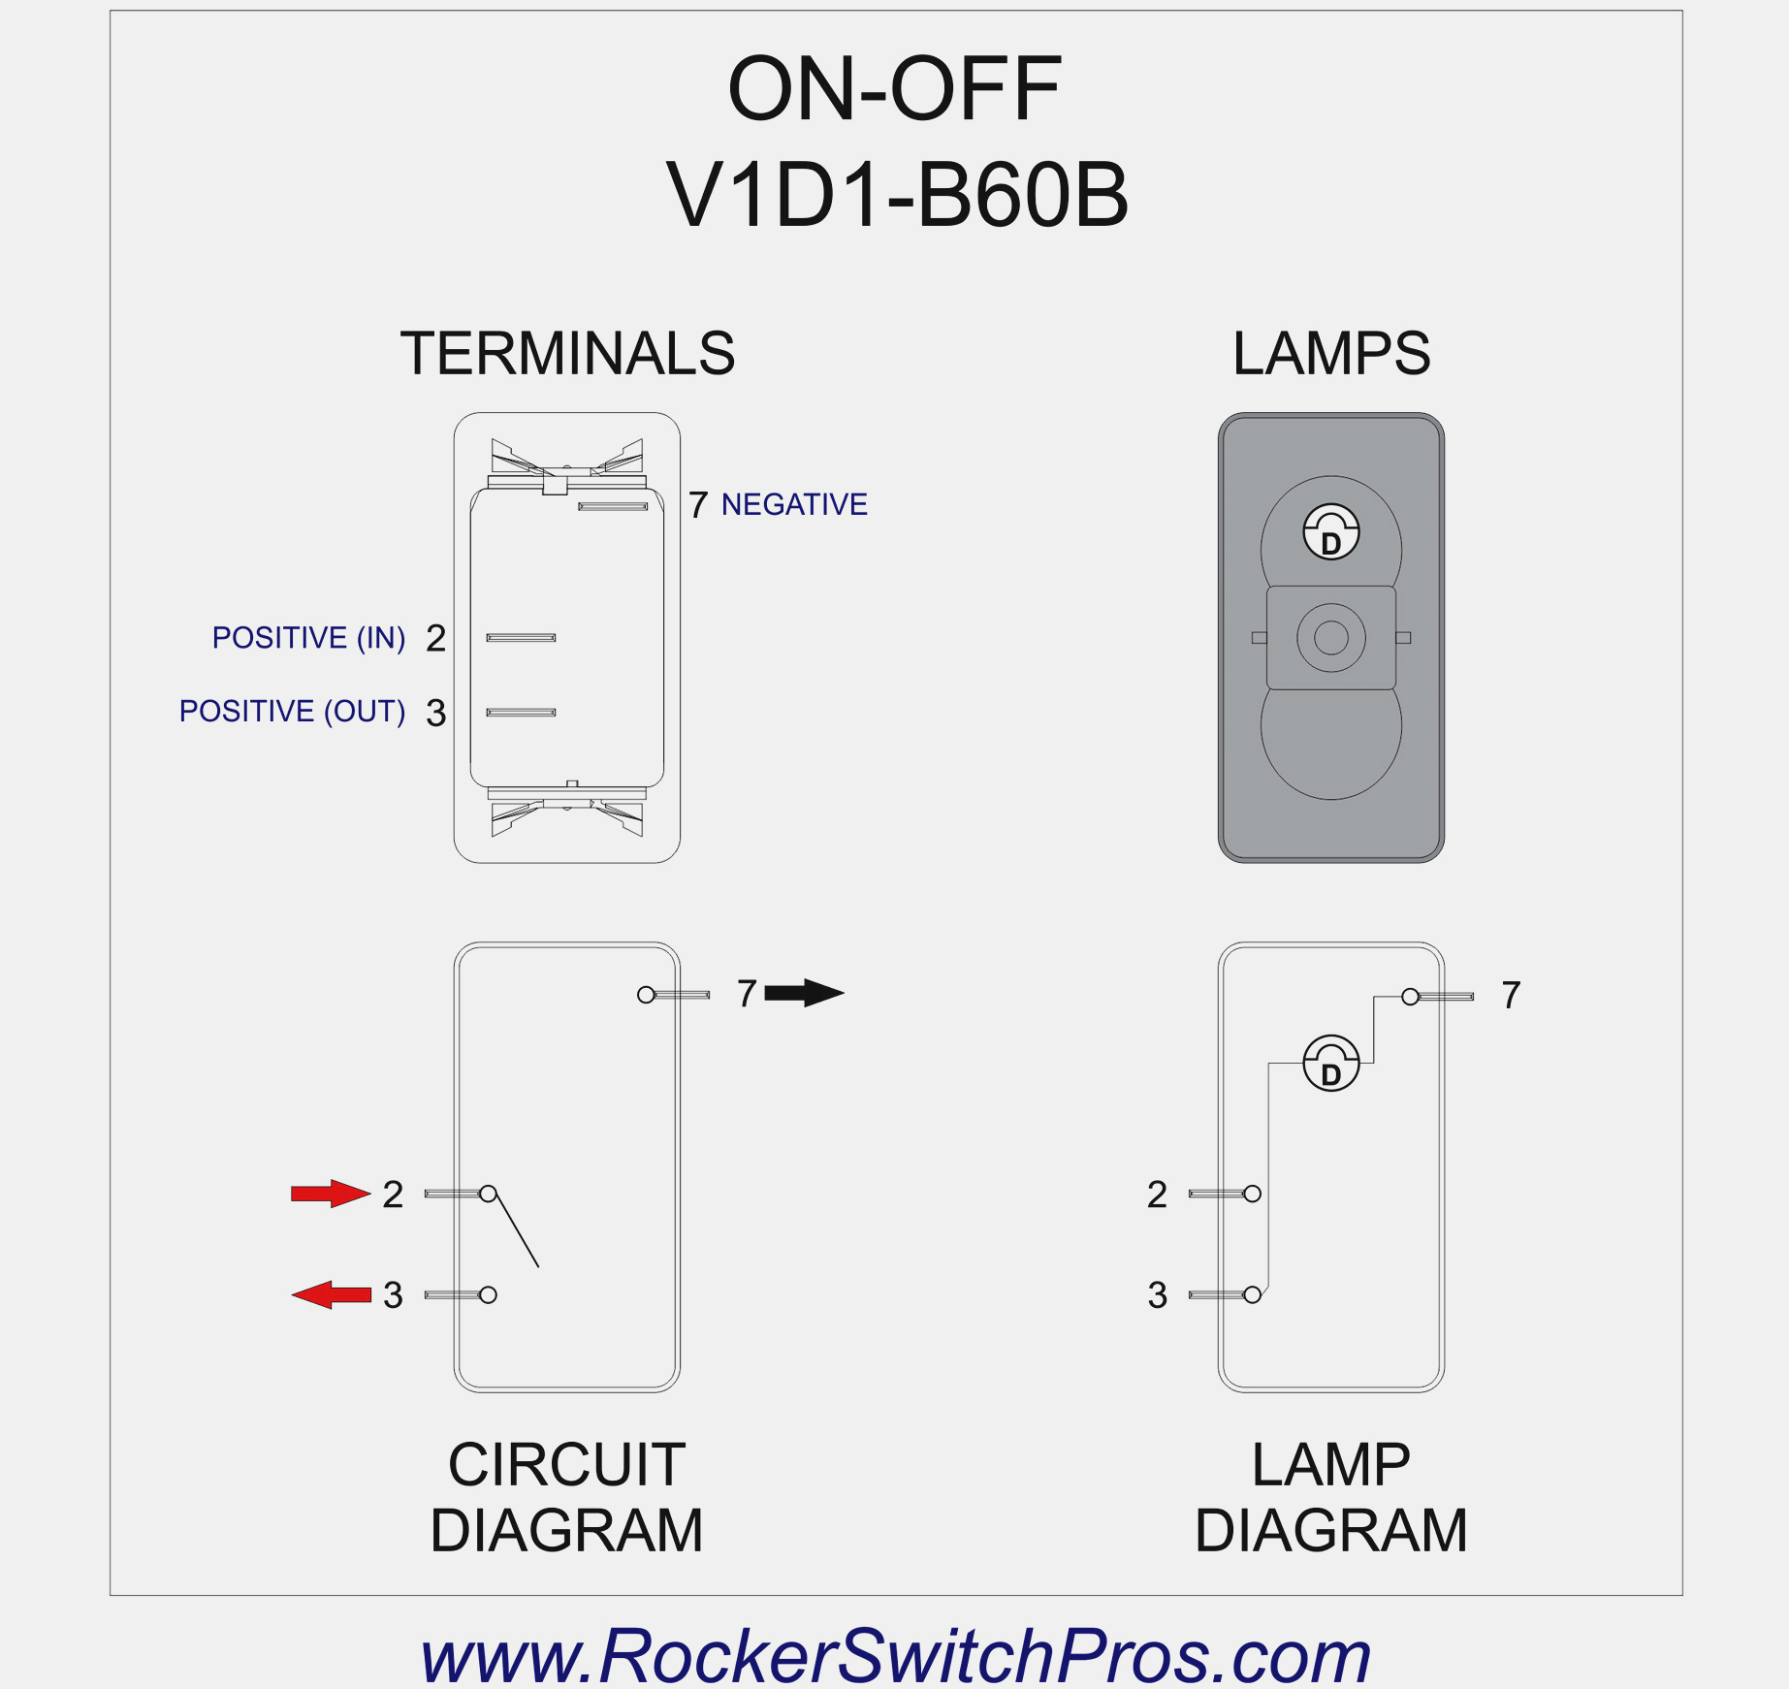 Lighted Rocker Switch Wiring Diagram 120V | Best Wiring Library - Lighted Rocker Switch Wiring Diagram 120V